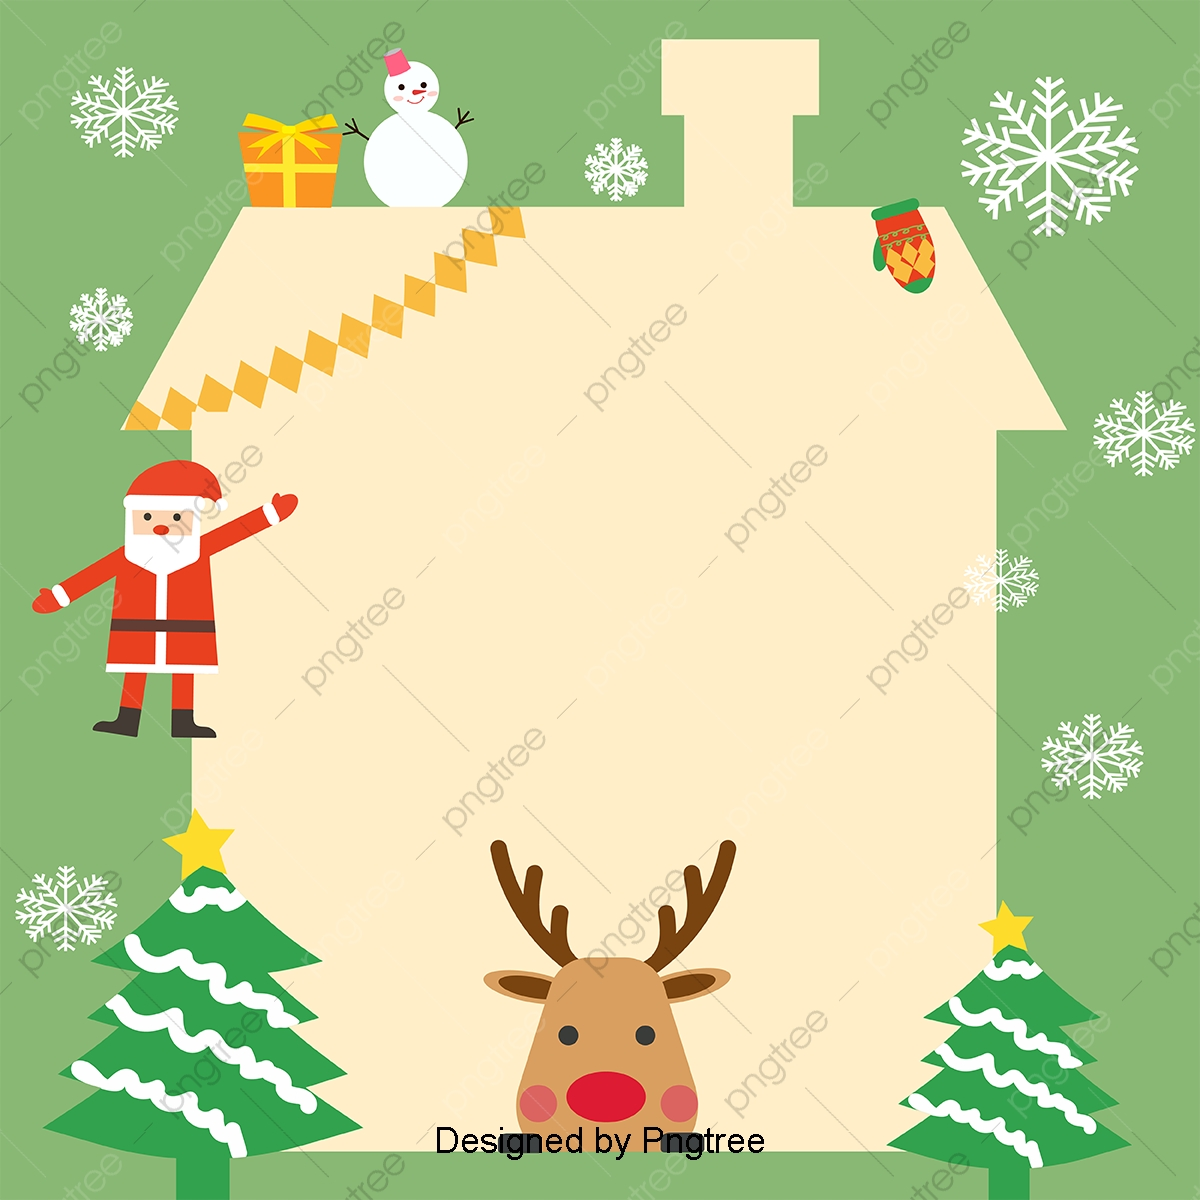 Simple Hand Painted Christmas Cute Cartoon Background, Fawn